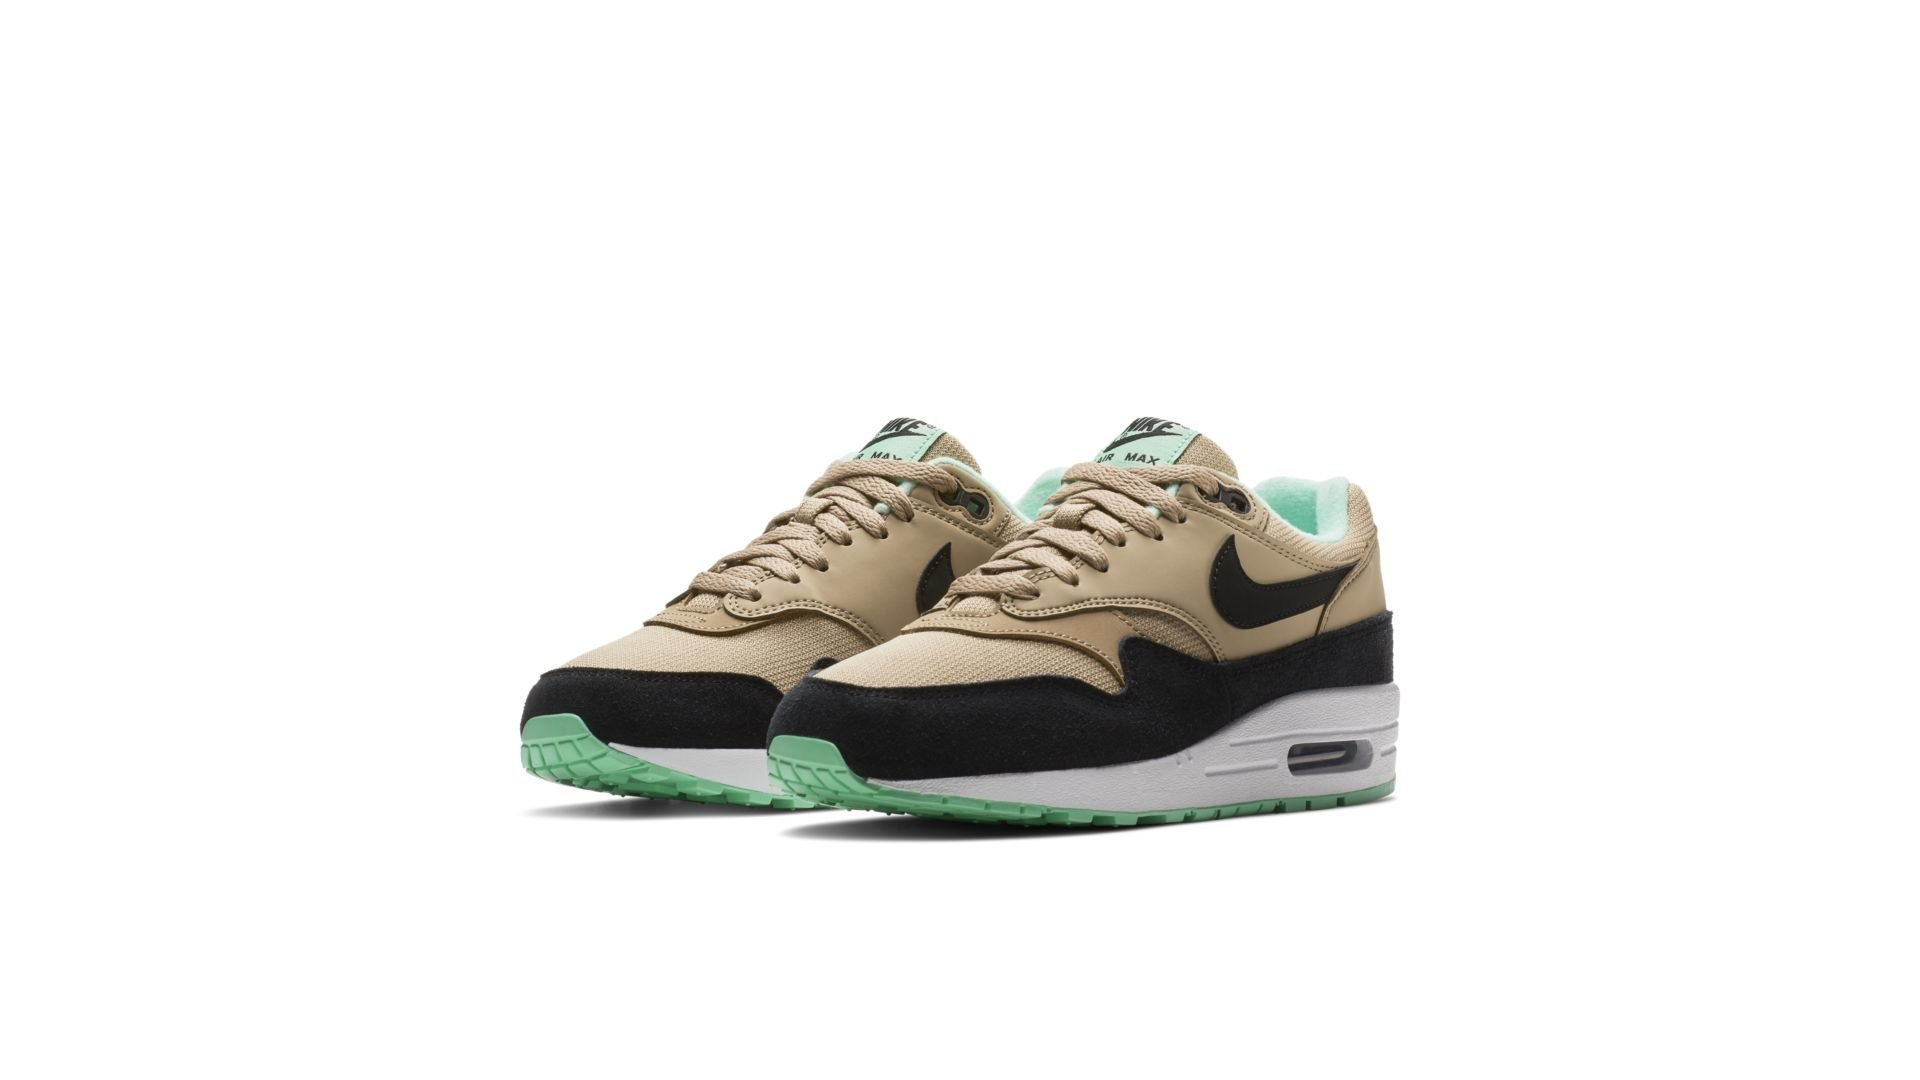 Nike WMNS Air Max 1 'Mint Green' (319986 206)